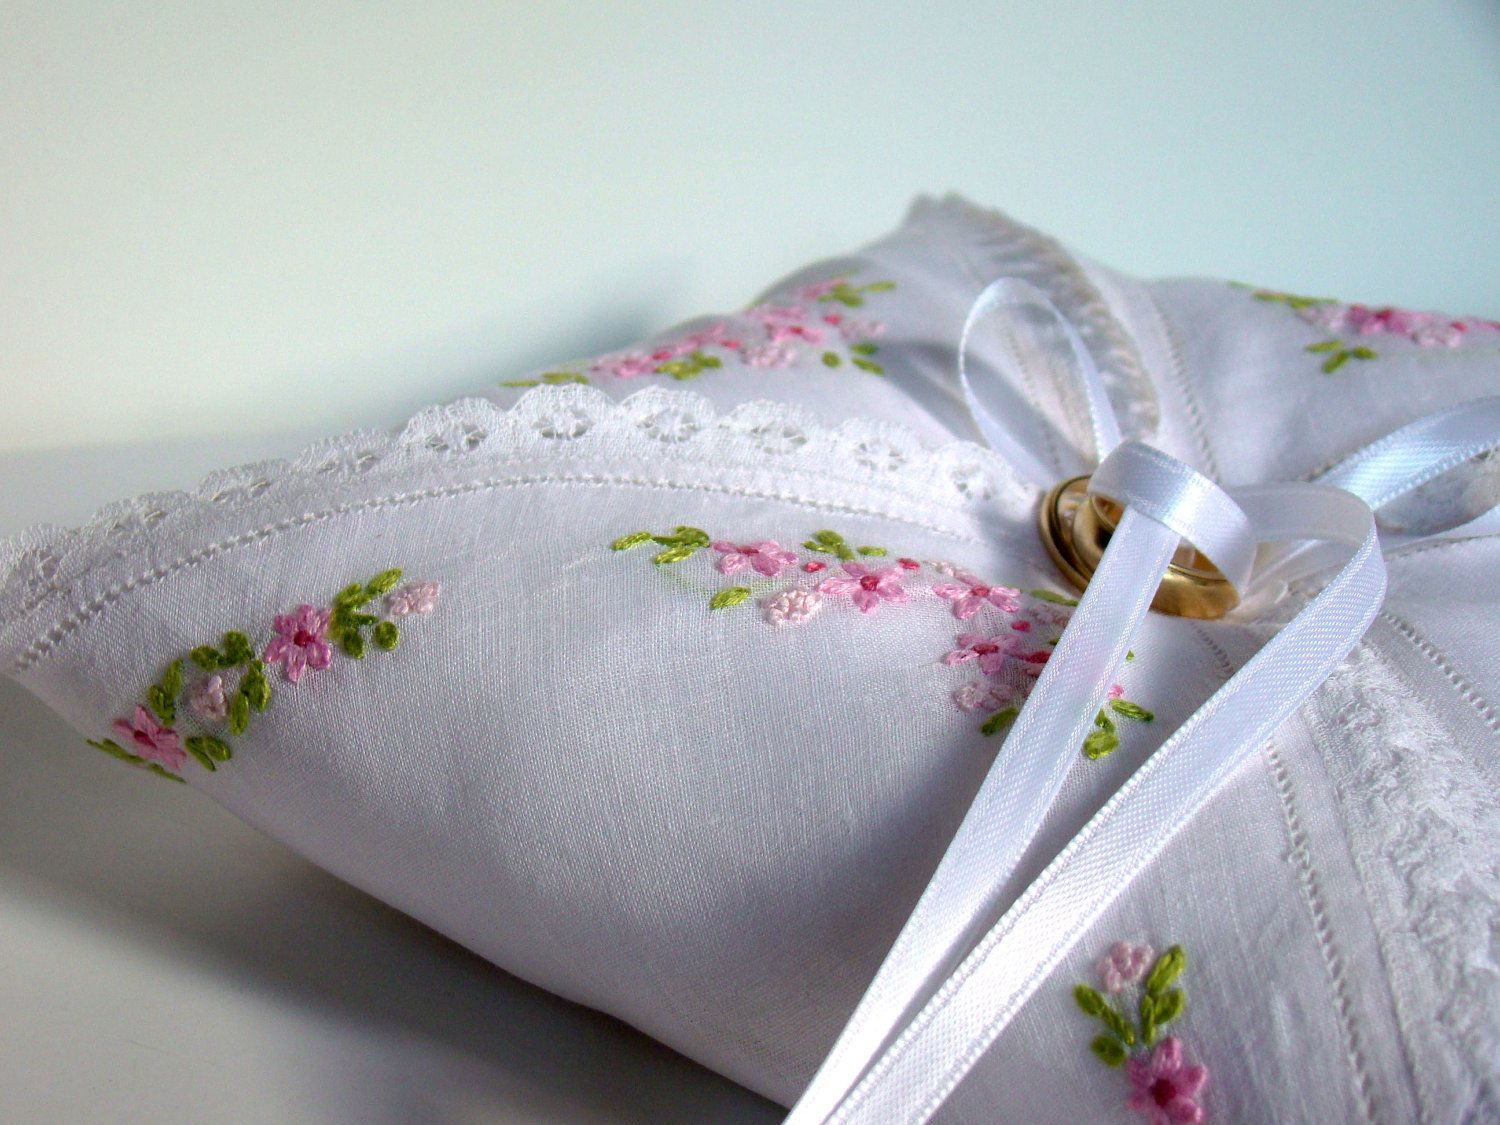 Wedding Ring Bearer Pillow, Rustic, Country, Vintage Ring Pillow, Vintage Handkerchief, Pink, Ringbearer, One of a Kind, Keepsake Pillow. $35,00, via Etsy.